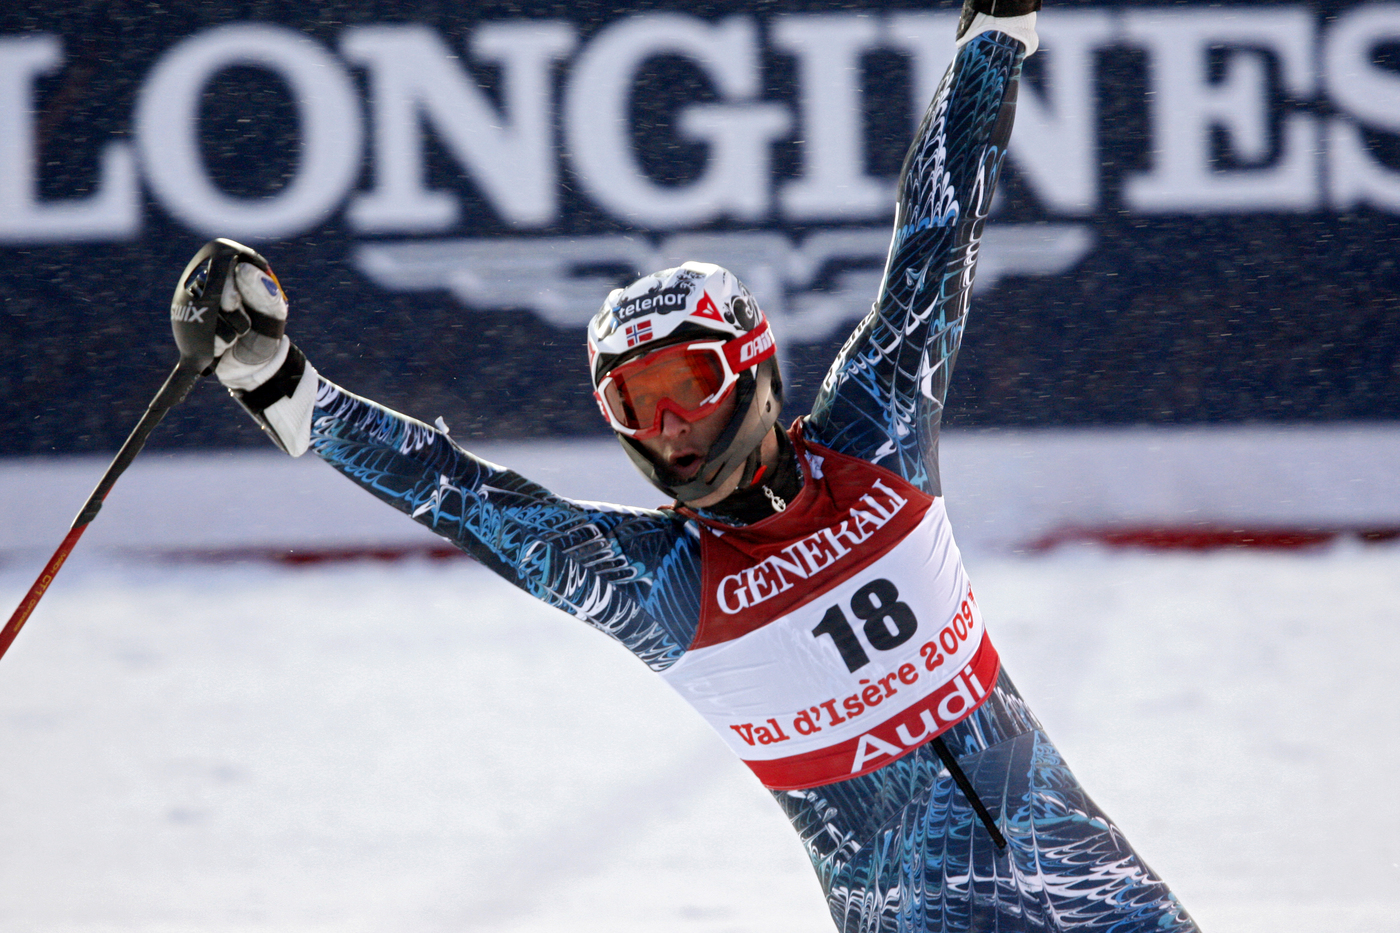 Longines Alpine Skiing Event: Longines and alpine skiing – a successful partnership continues 5